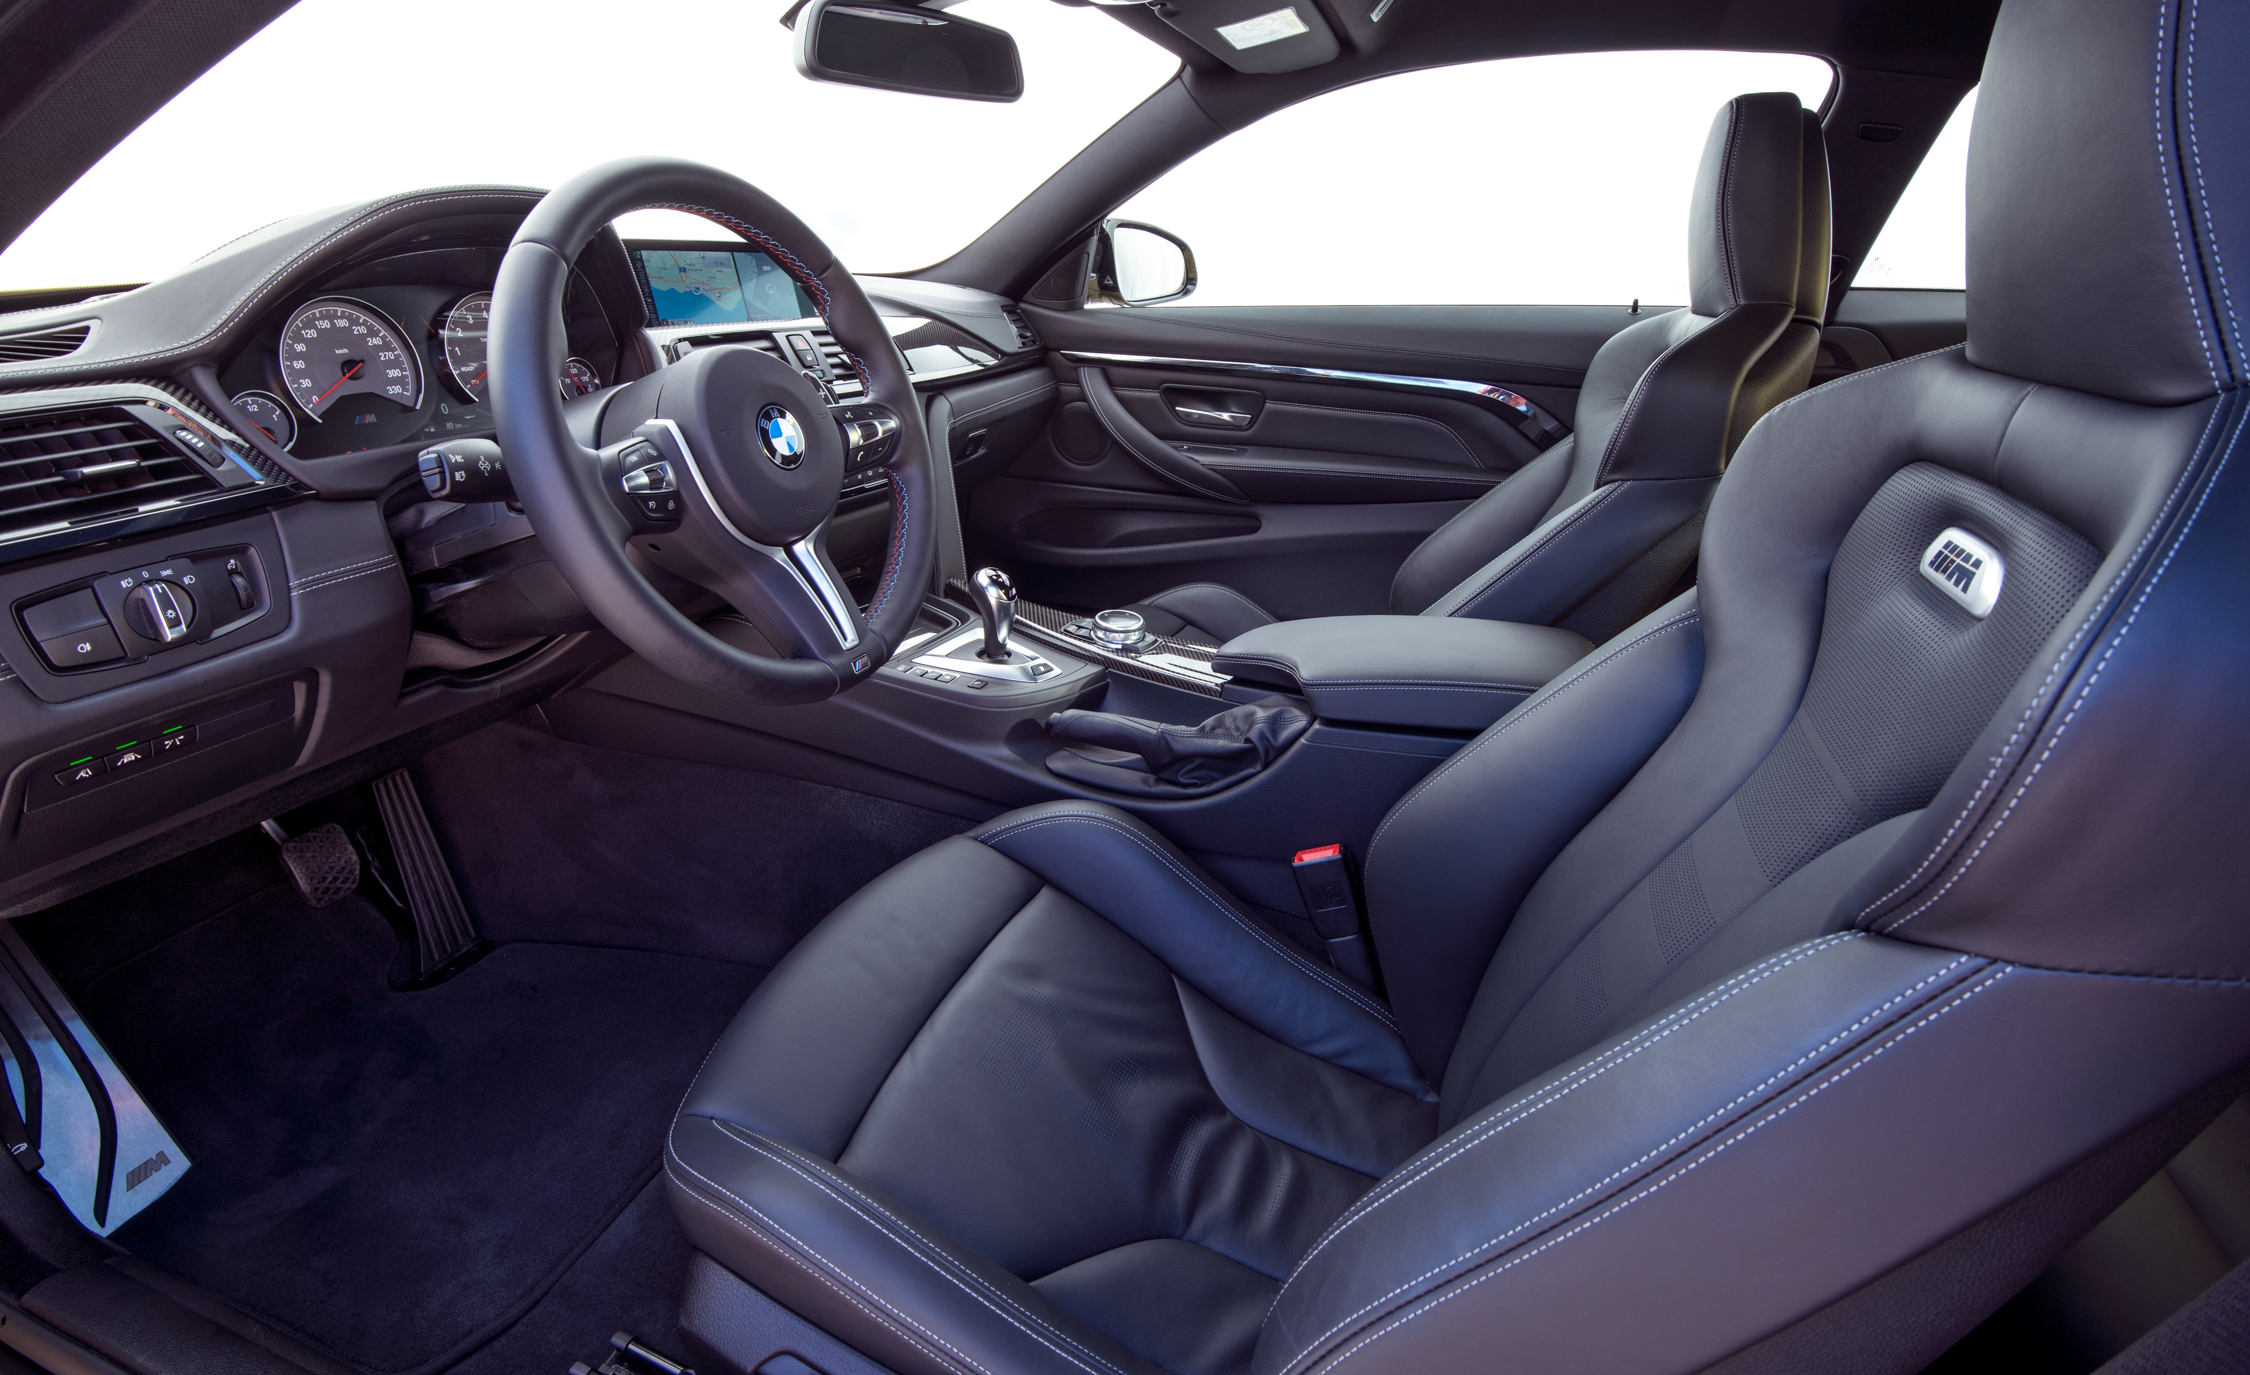 2015 BMW M4 Coupe Interior (Photo 9 of 41)